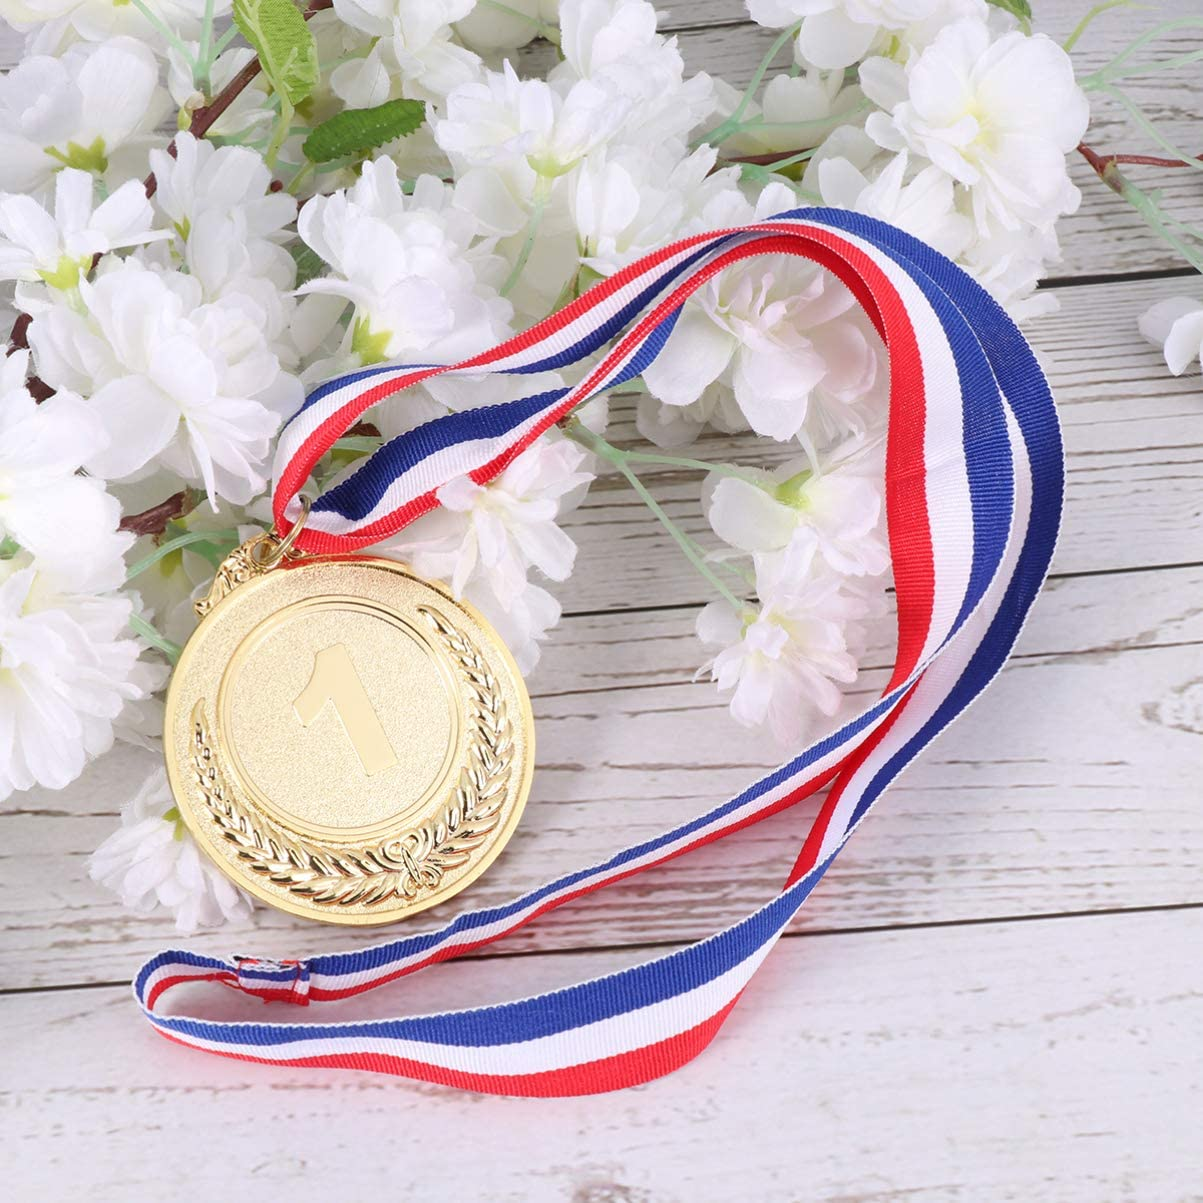 Gold LIOOBO 4 Pcs Award Medals with Ribbons Gold Silver Bronze Prizes First Second Third Winner Wheat Medals for Sports for Academics Sports Competition